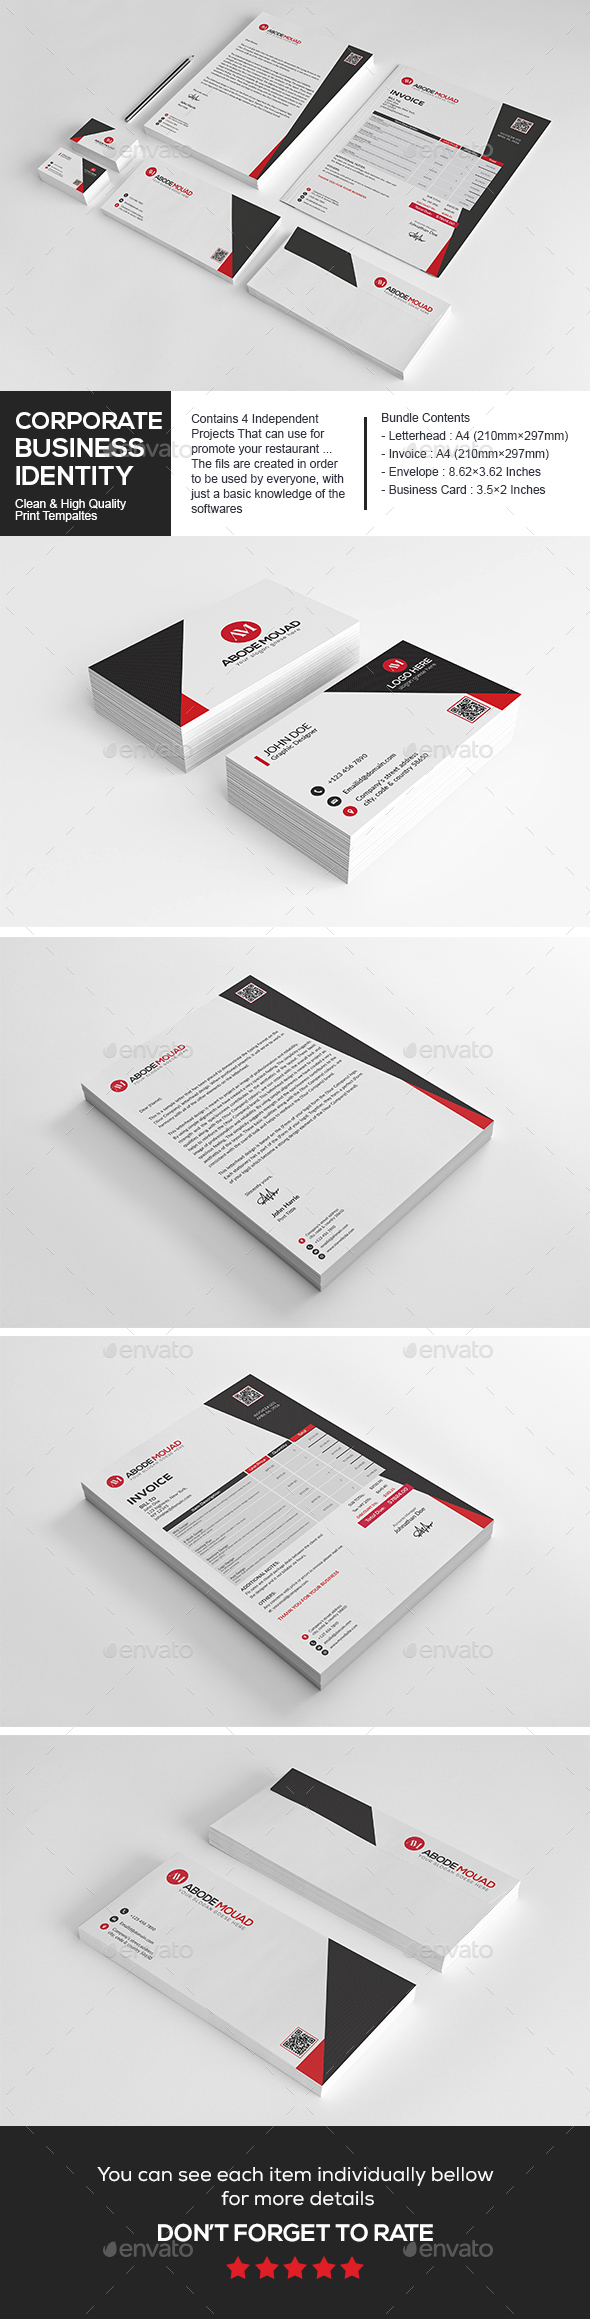 Corporate Business Identity - Stationery Print Templates